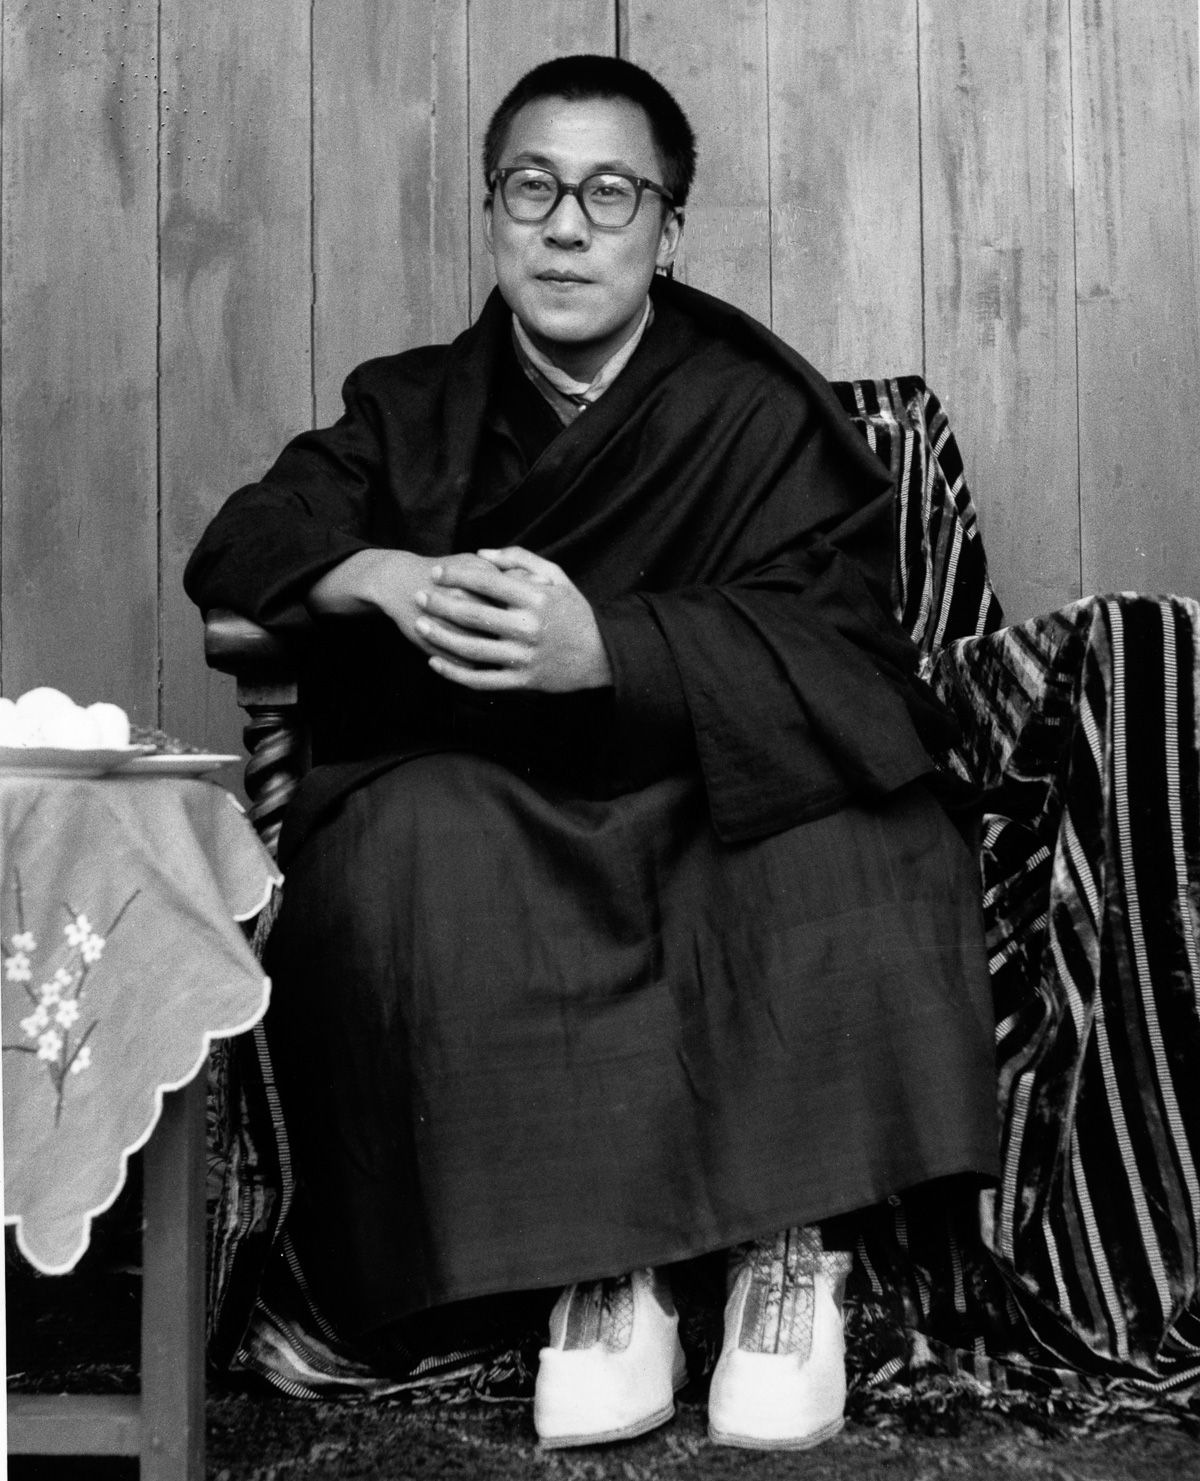 Dalai Lama turns 80: How the young spiritual leader came of age